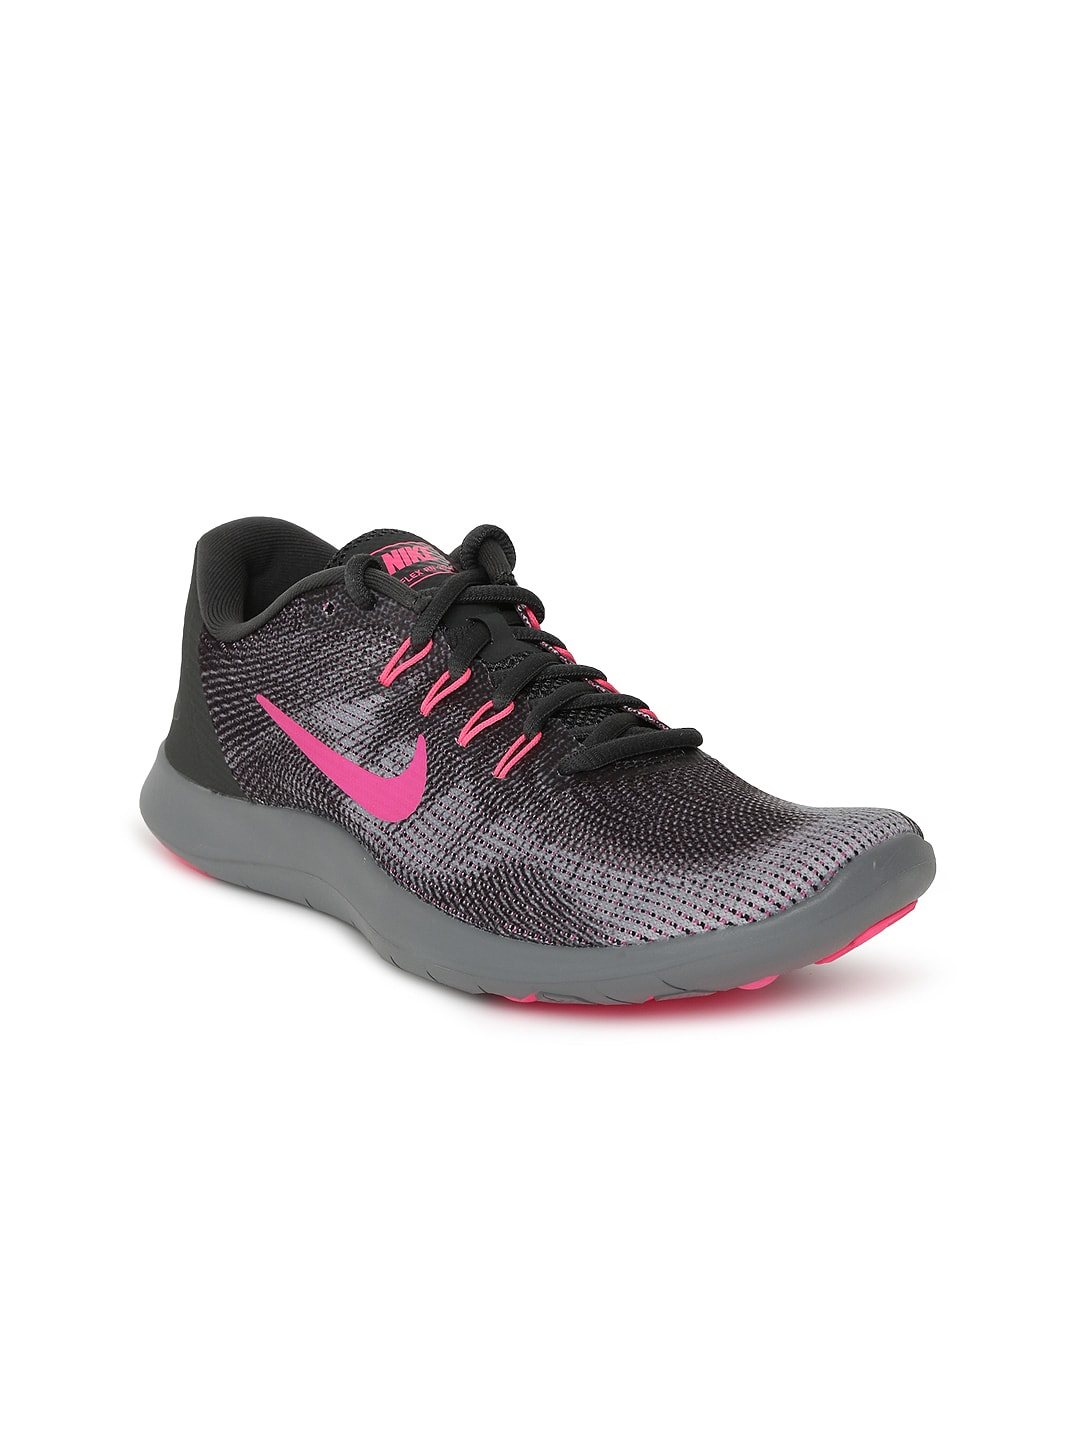 buy popular db51f 73dec Nike Running Shoes - Buy Nike Running Shoes Online   Myntra